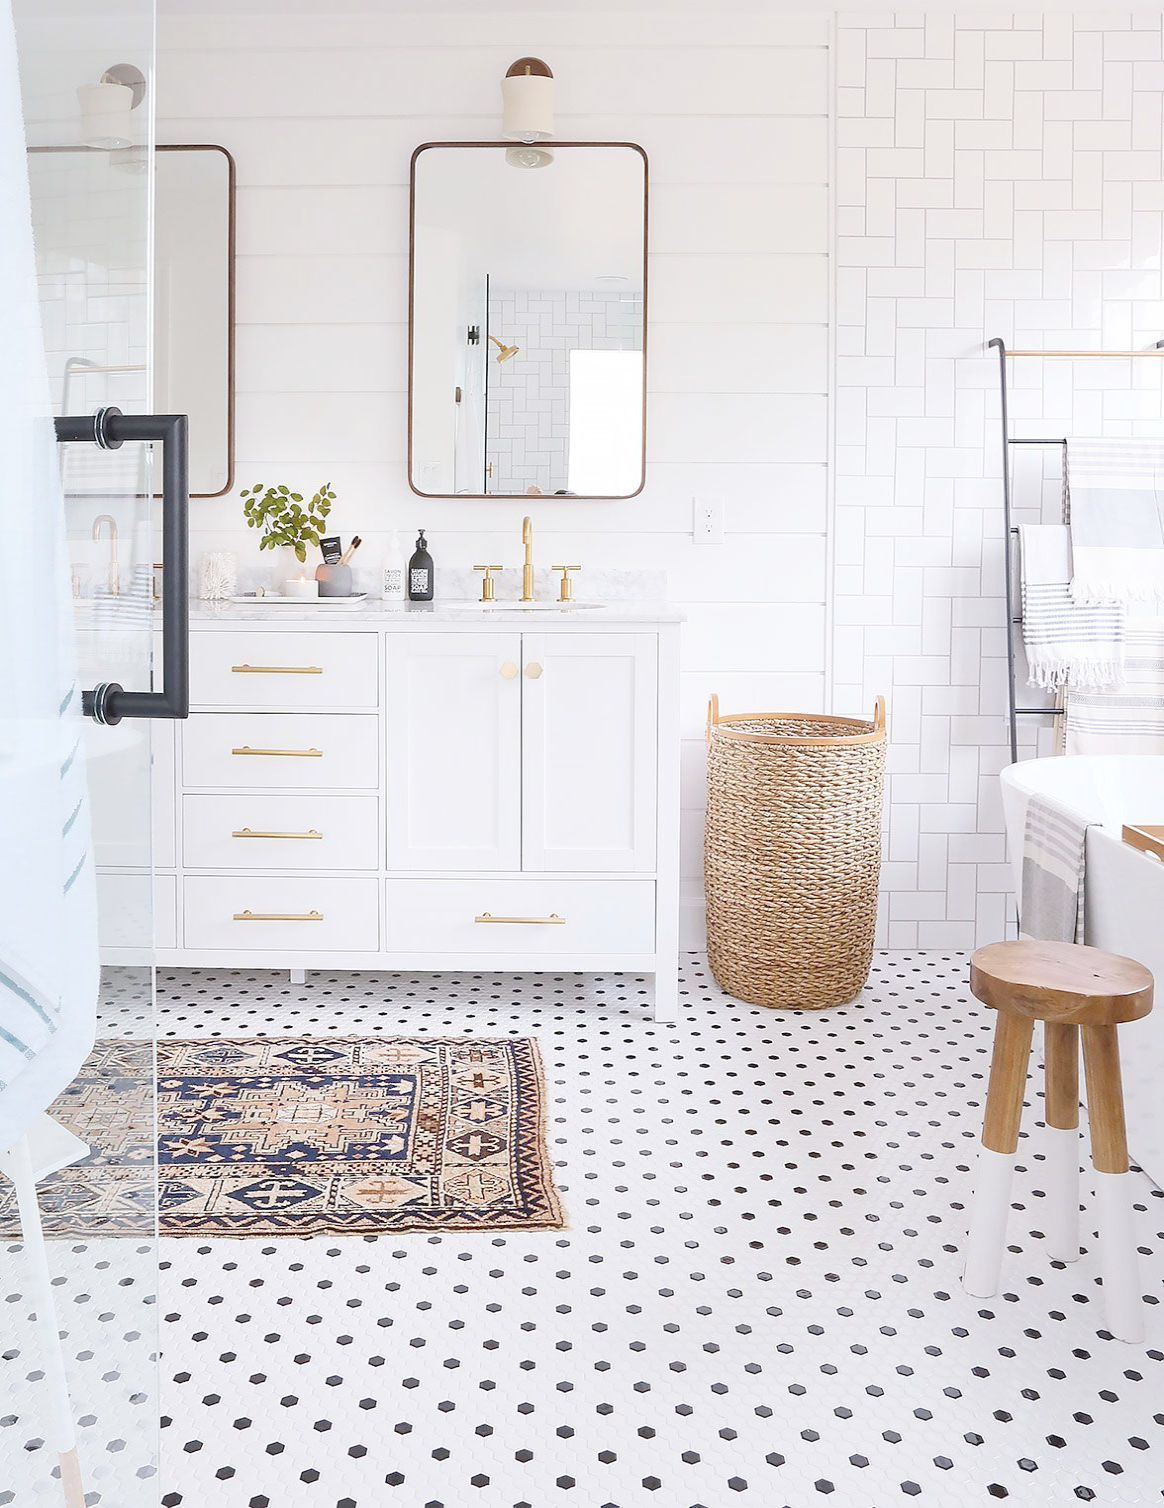 Small Bathroom Renovation Ideas Another Average Cost For Small Bathroom Renovation From Small Bathroom Remodel Labor Cost Inside Bathroom Cabinets For Sal Badrum